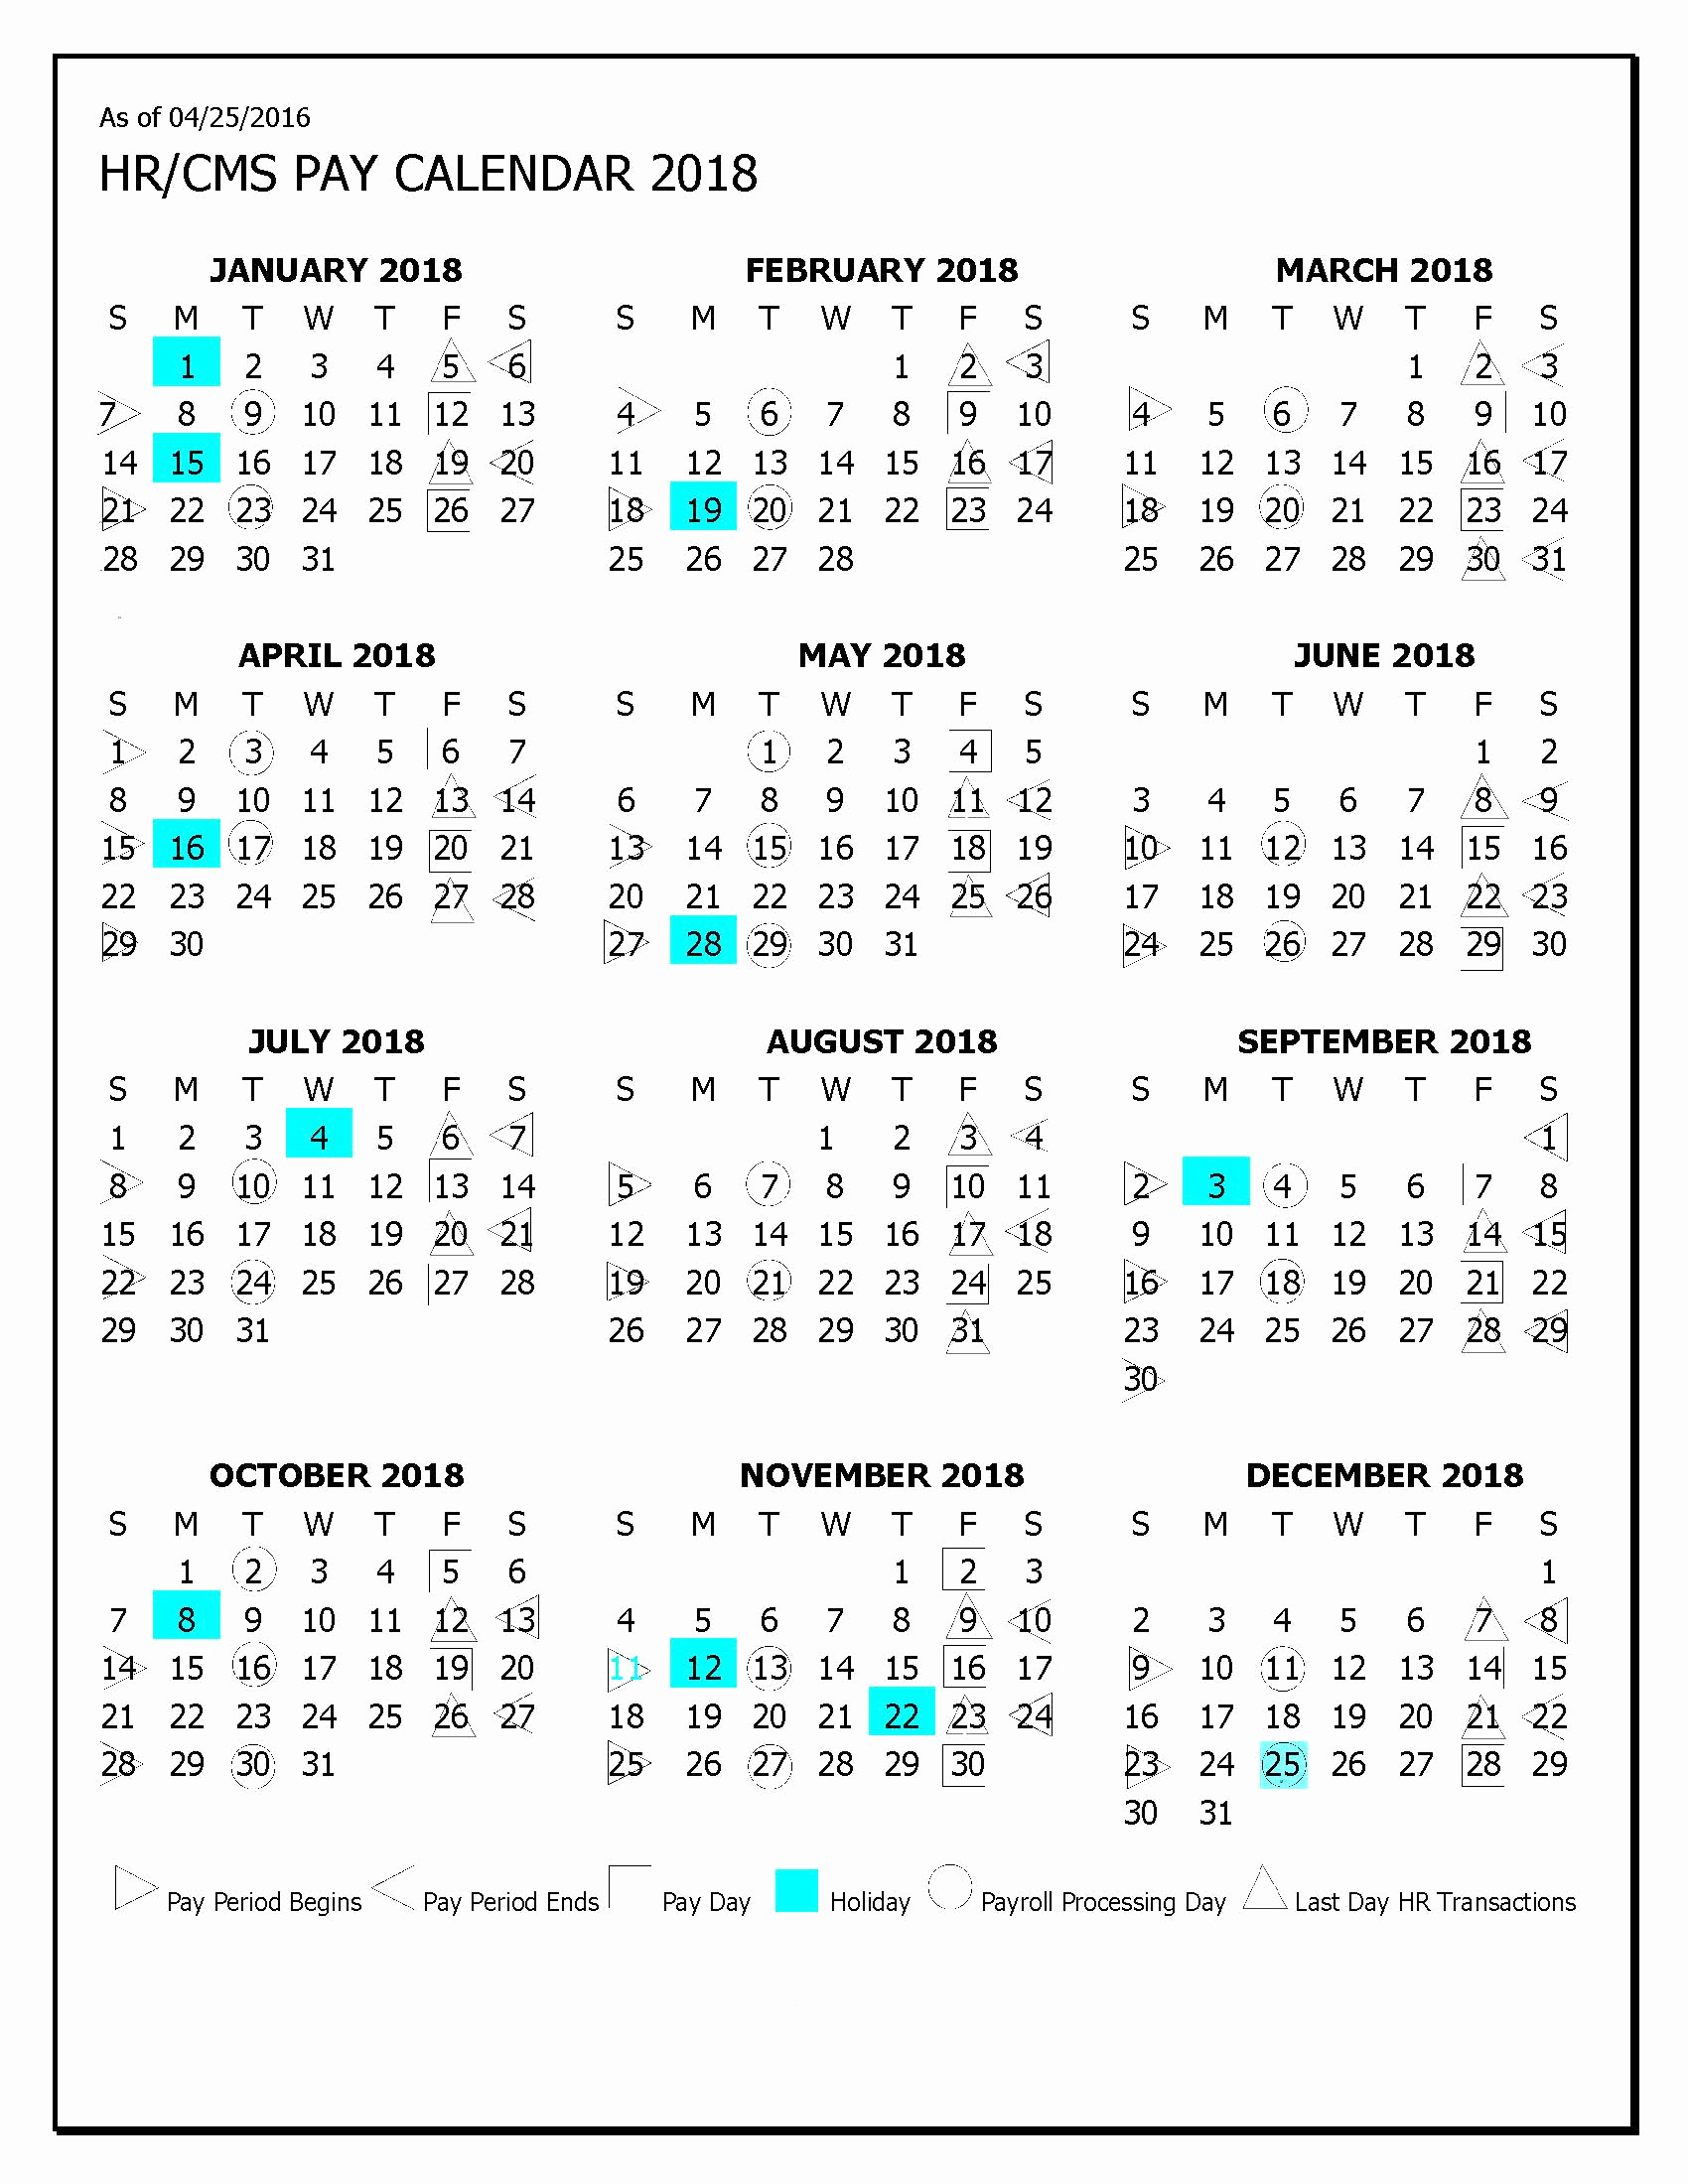 Hhs Payroll Calendar 2018 2018 Payroll Calendar Hospi within Hhs Payroll Calendar 2020 Color